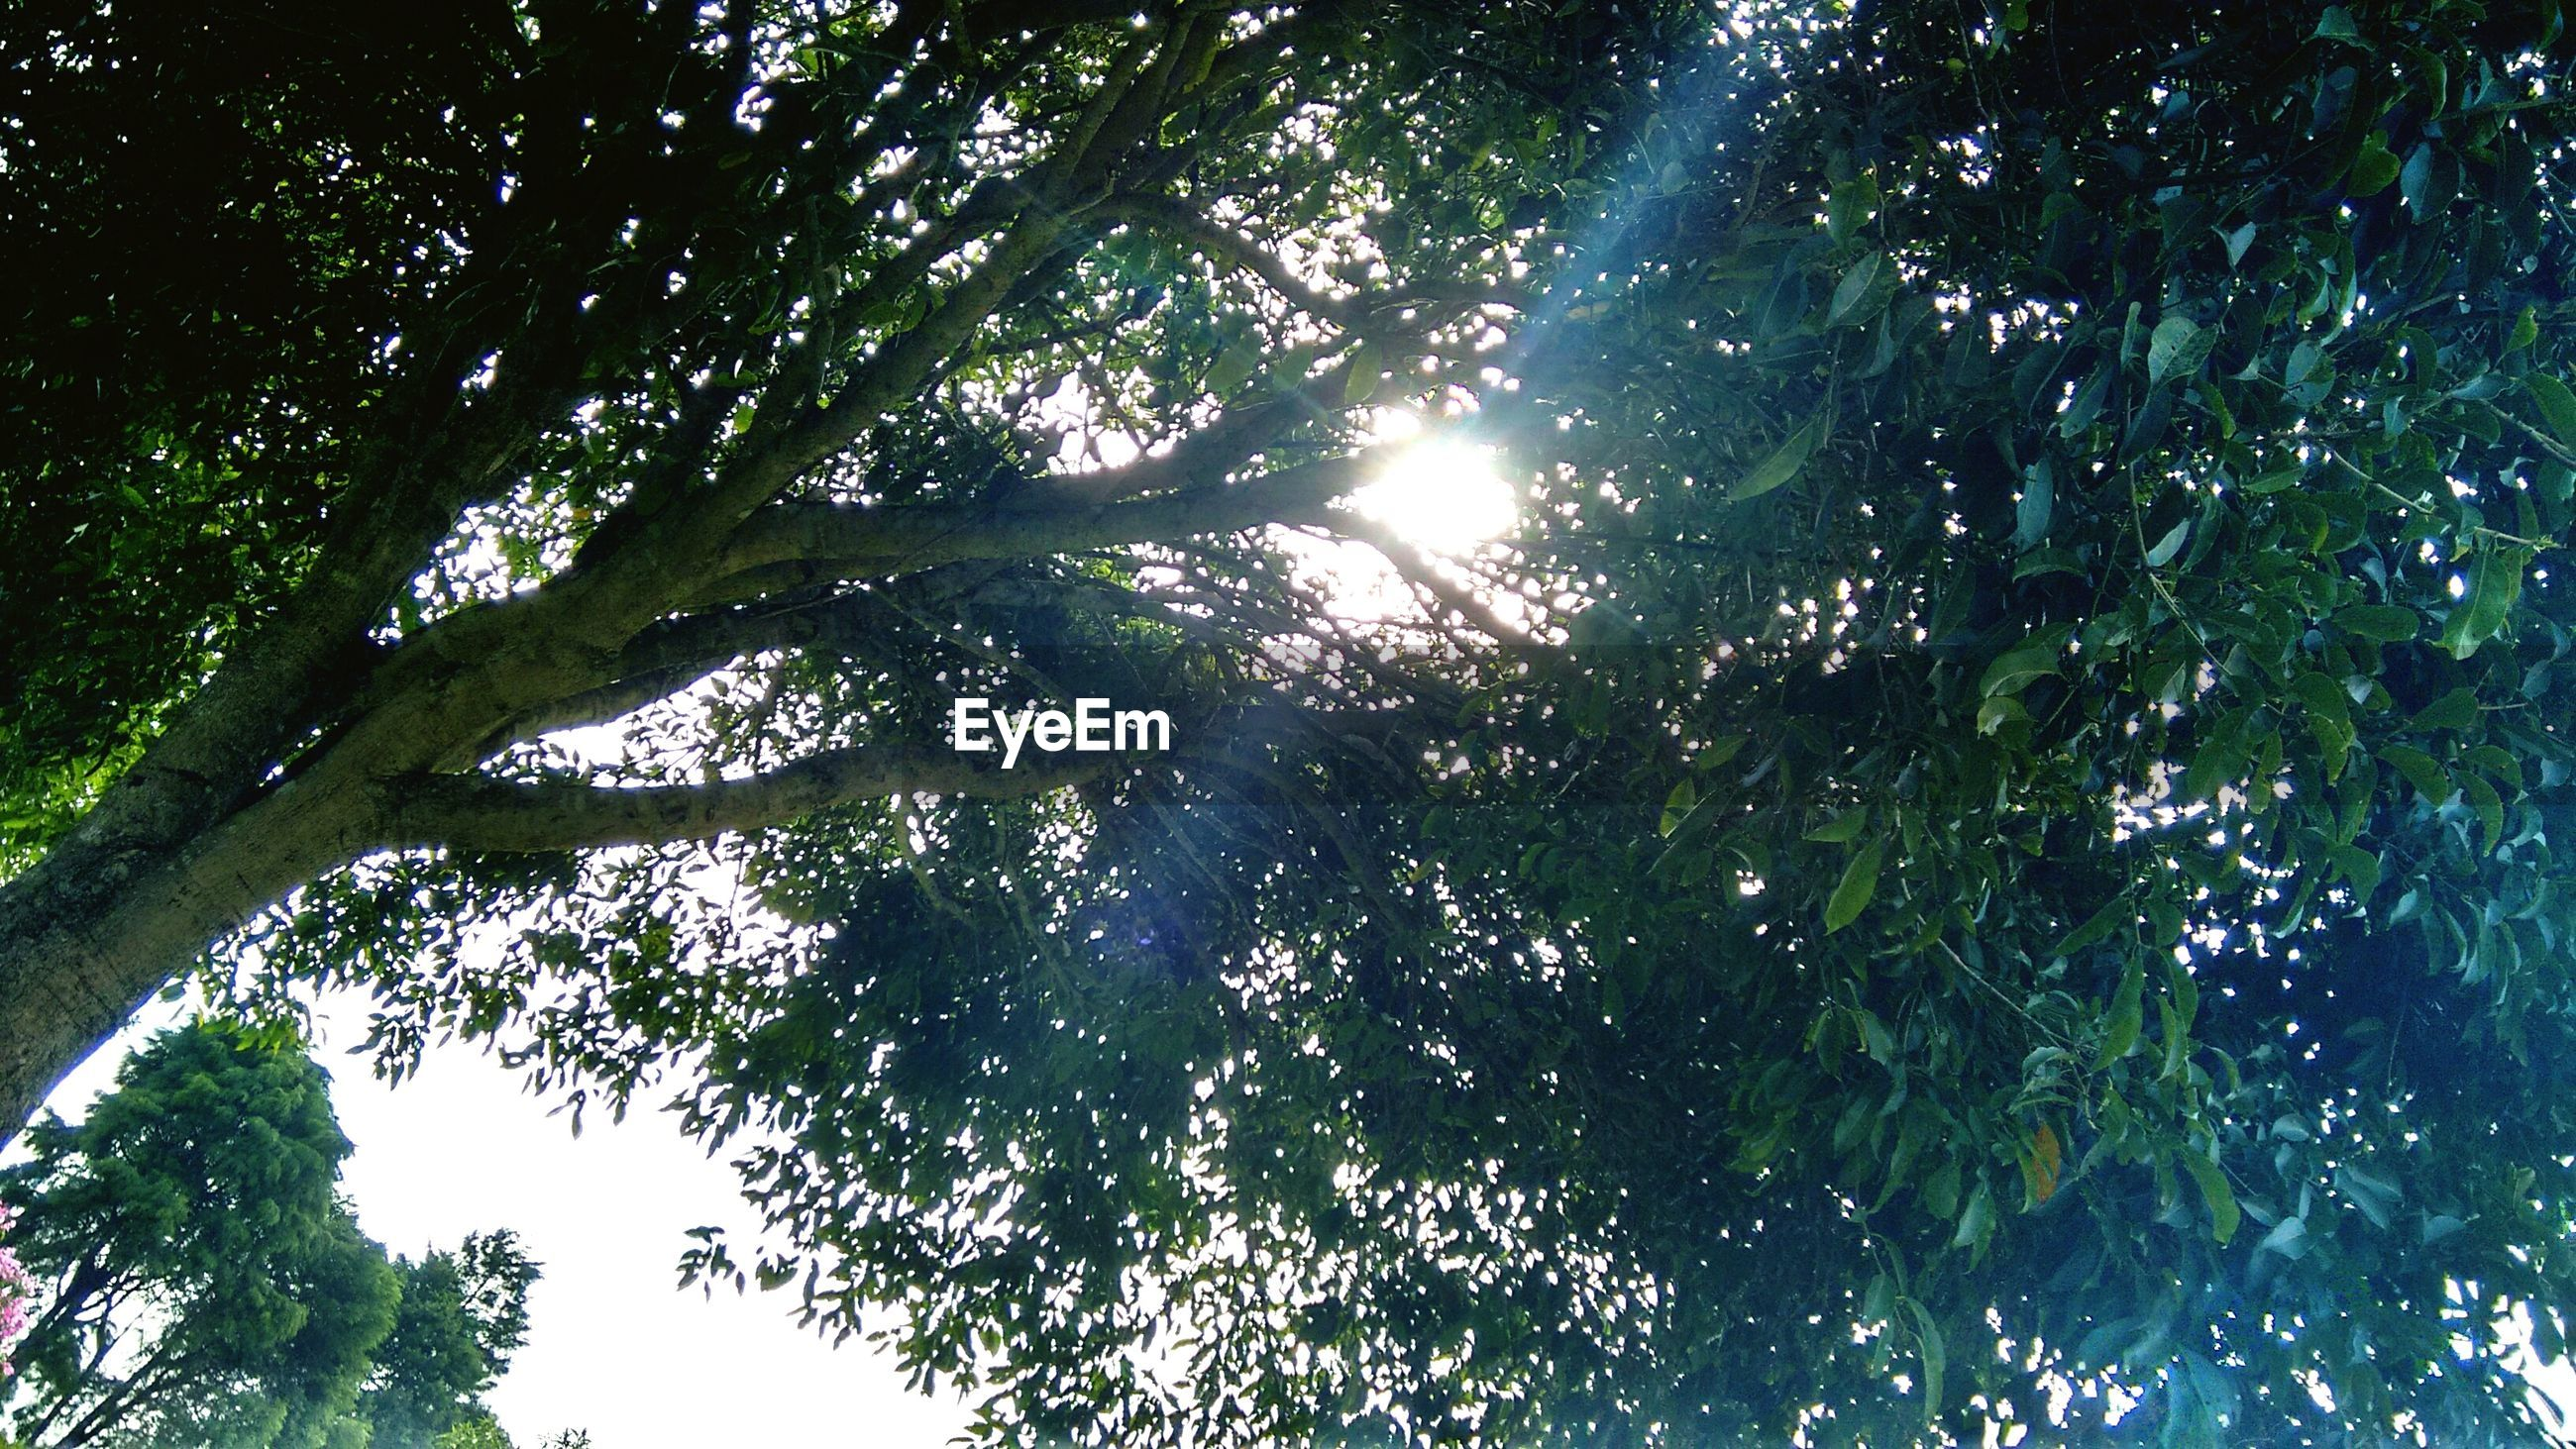 tree, low angle view, growth, branch, tranquility, sun, sunlight, nature, beauty in nature, sunbeam, sky, lens flare, scenics, forest, day, tranquil scene, outdoors, no people, tree trunk, green color